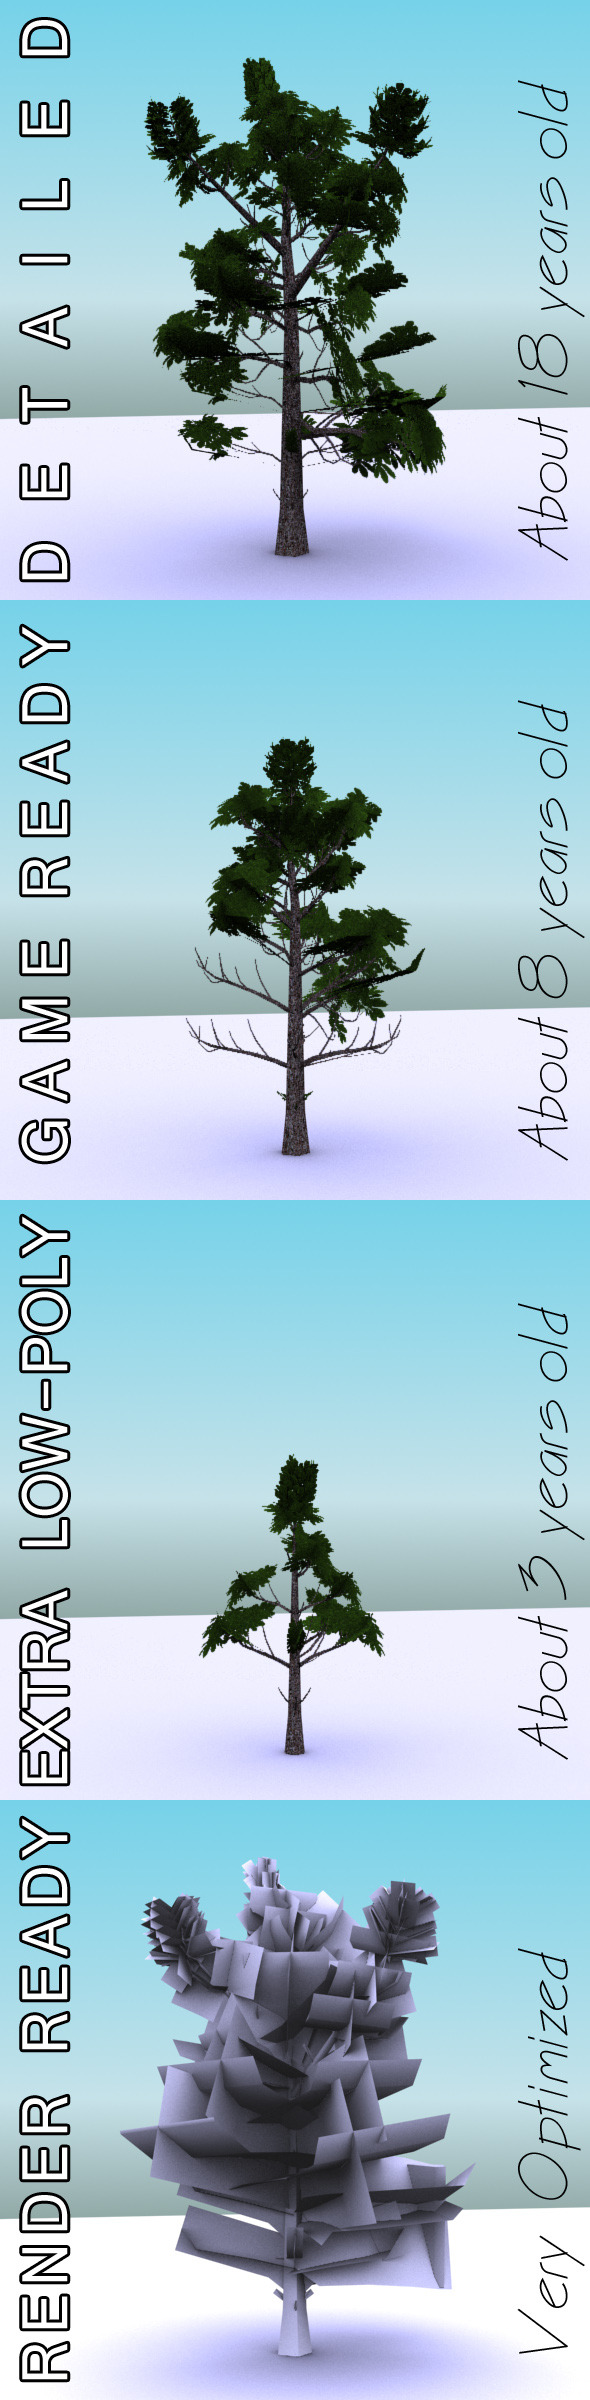 3DOcean GameReady Low Poly Tree Pack 3 Horse-chestnut 10666383